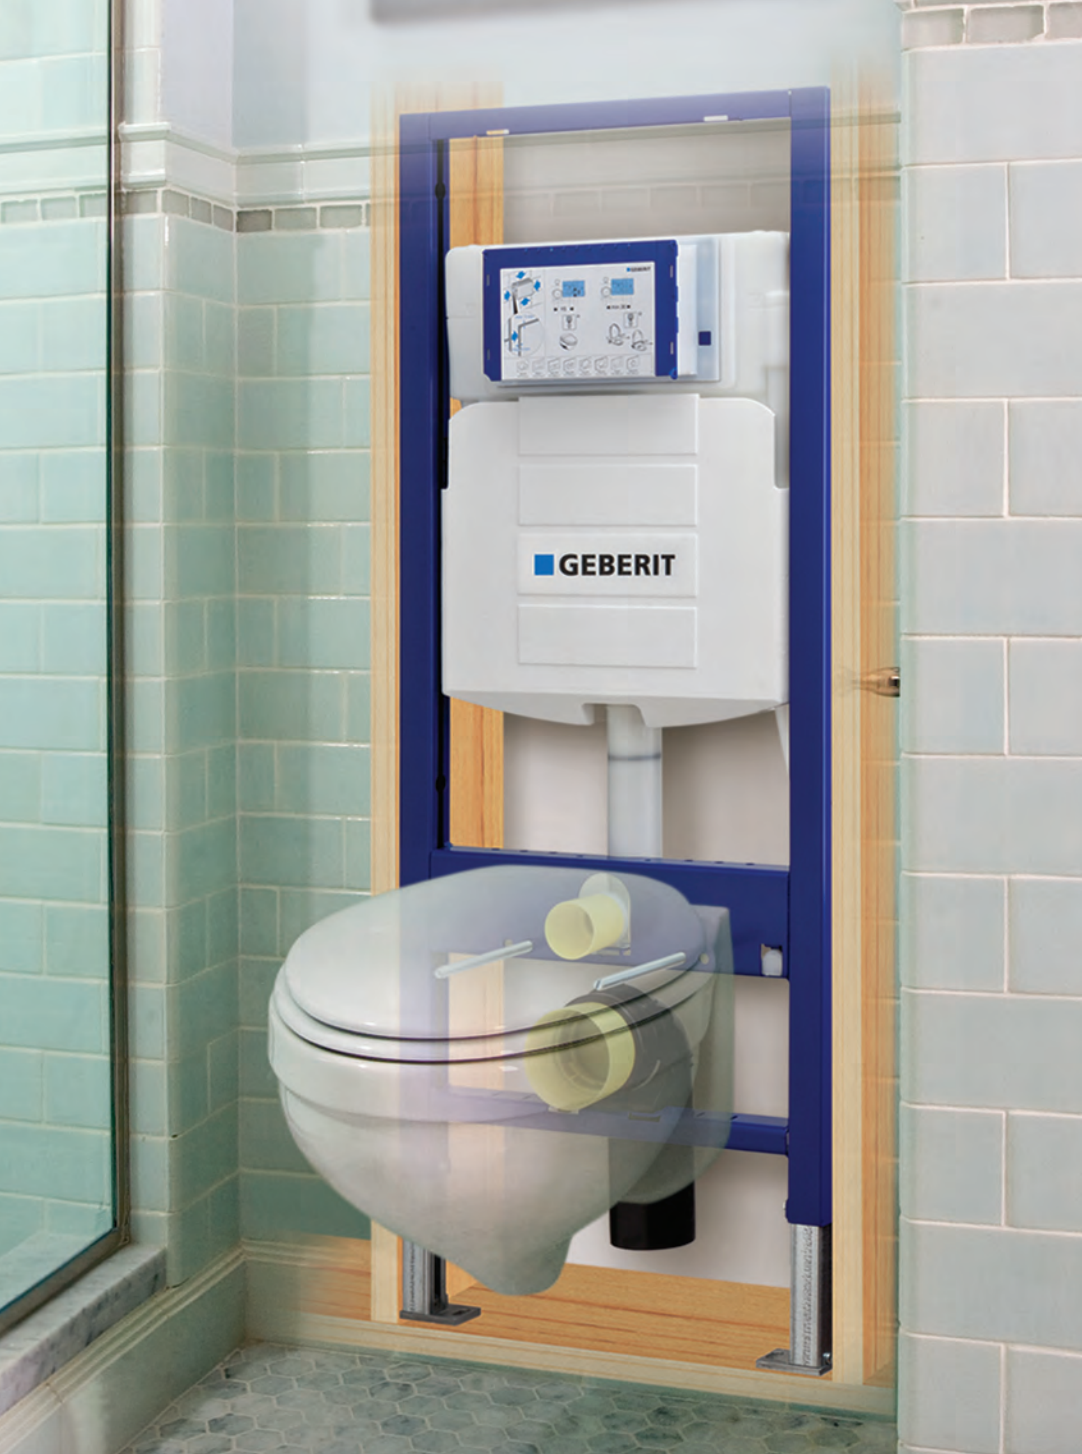 Wc Suspendu Grohe Dimension geberit - duofix carrier for wall-hung toilet & 2x6